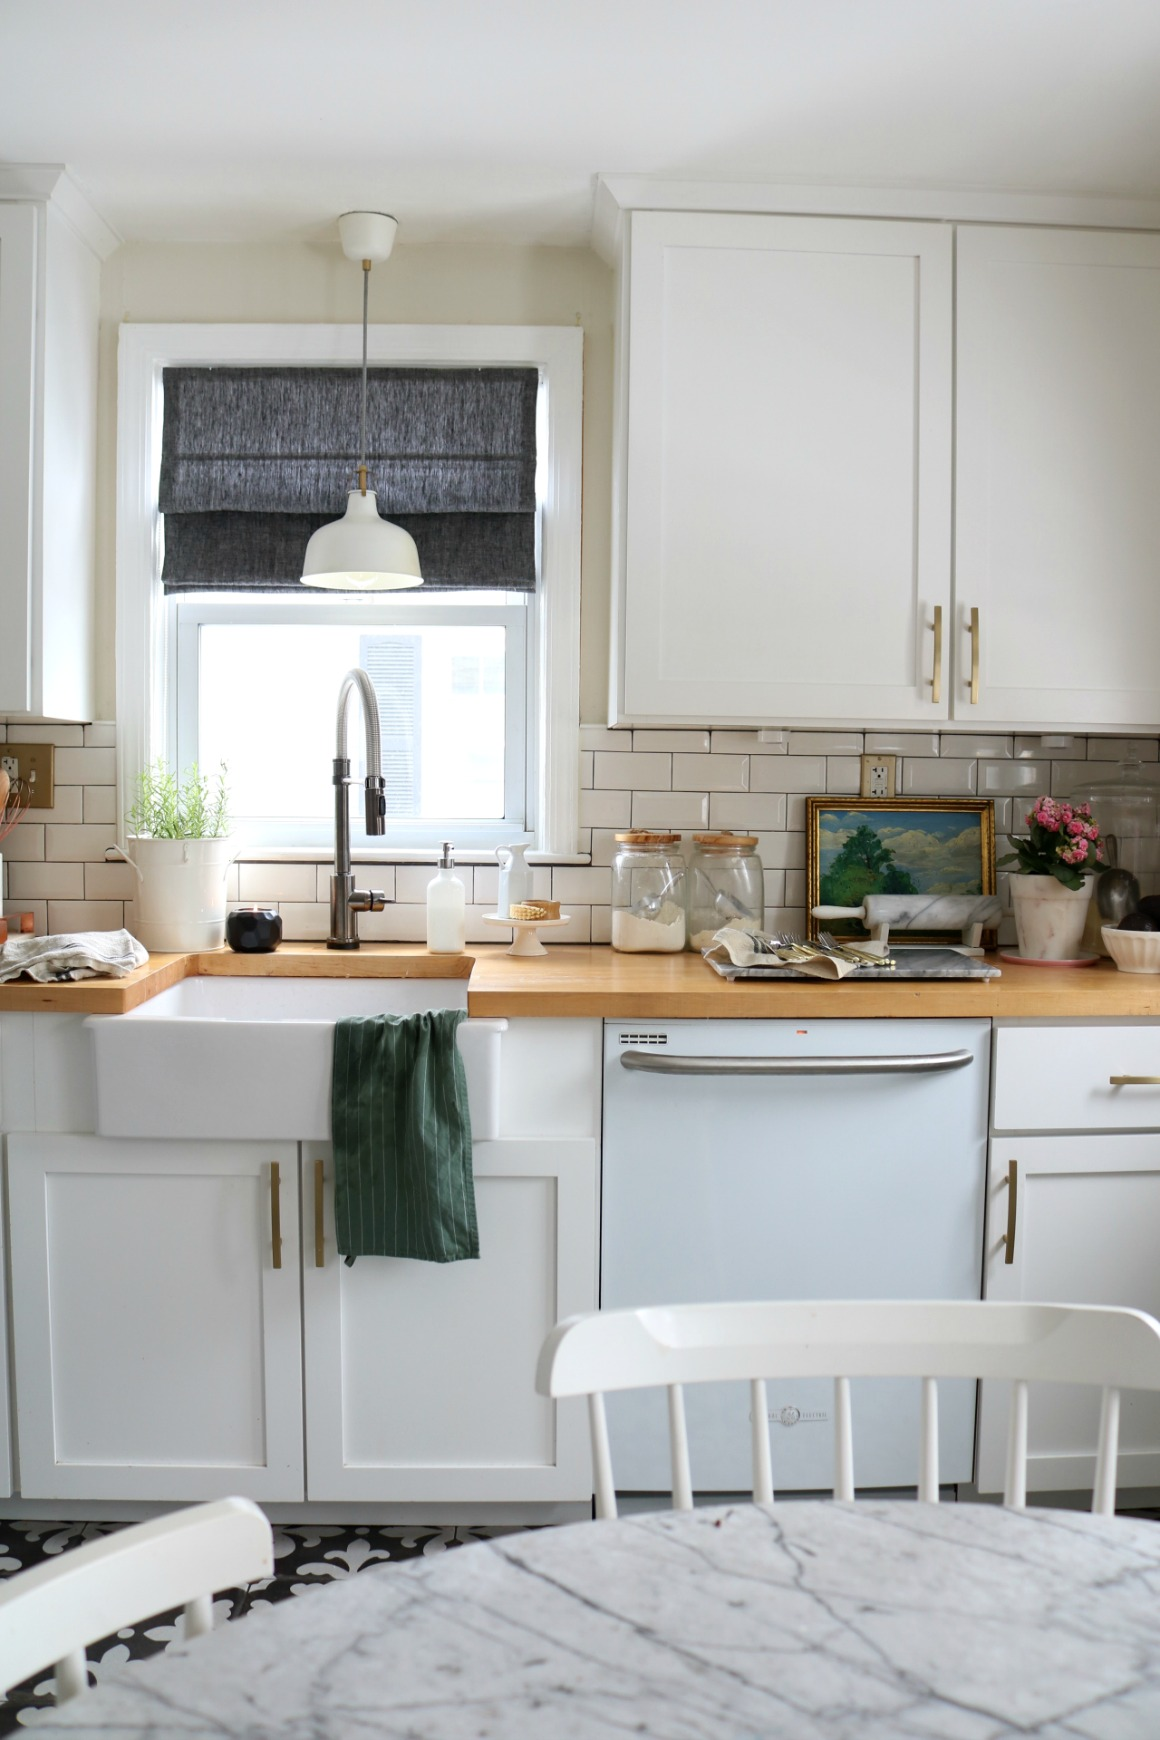 How to Mix Metals in the Kitchen and our Kitchen Faucet ...